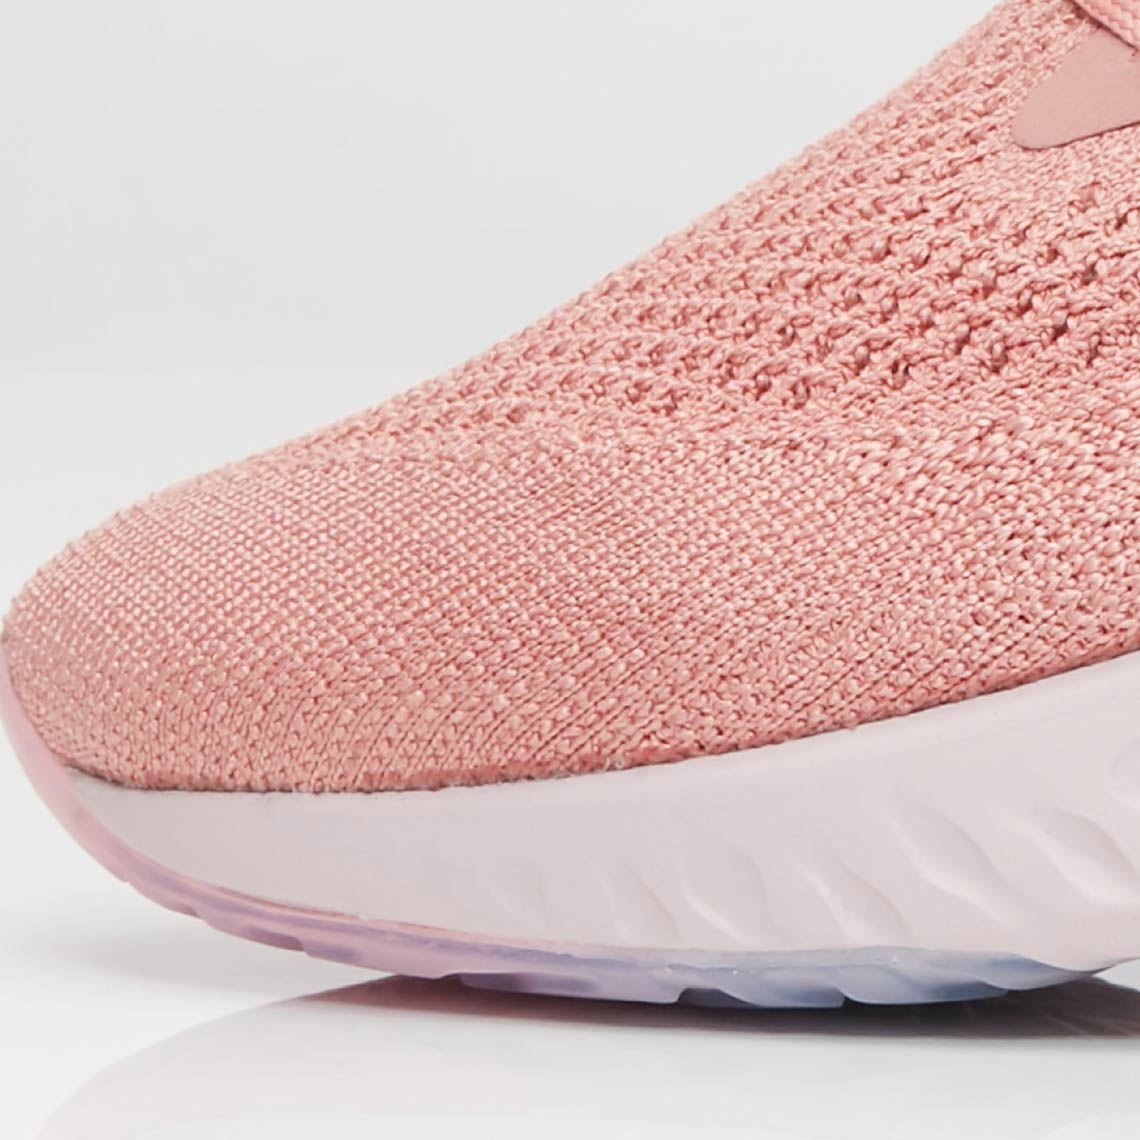 e3326f53829 Release Date: July 5, 2018. COMING SOON TO SNS $150. Color: Rust Pink/Pink  Tint/Tropical Pink